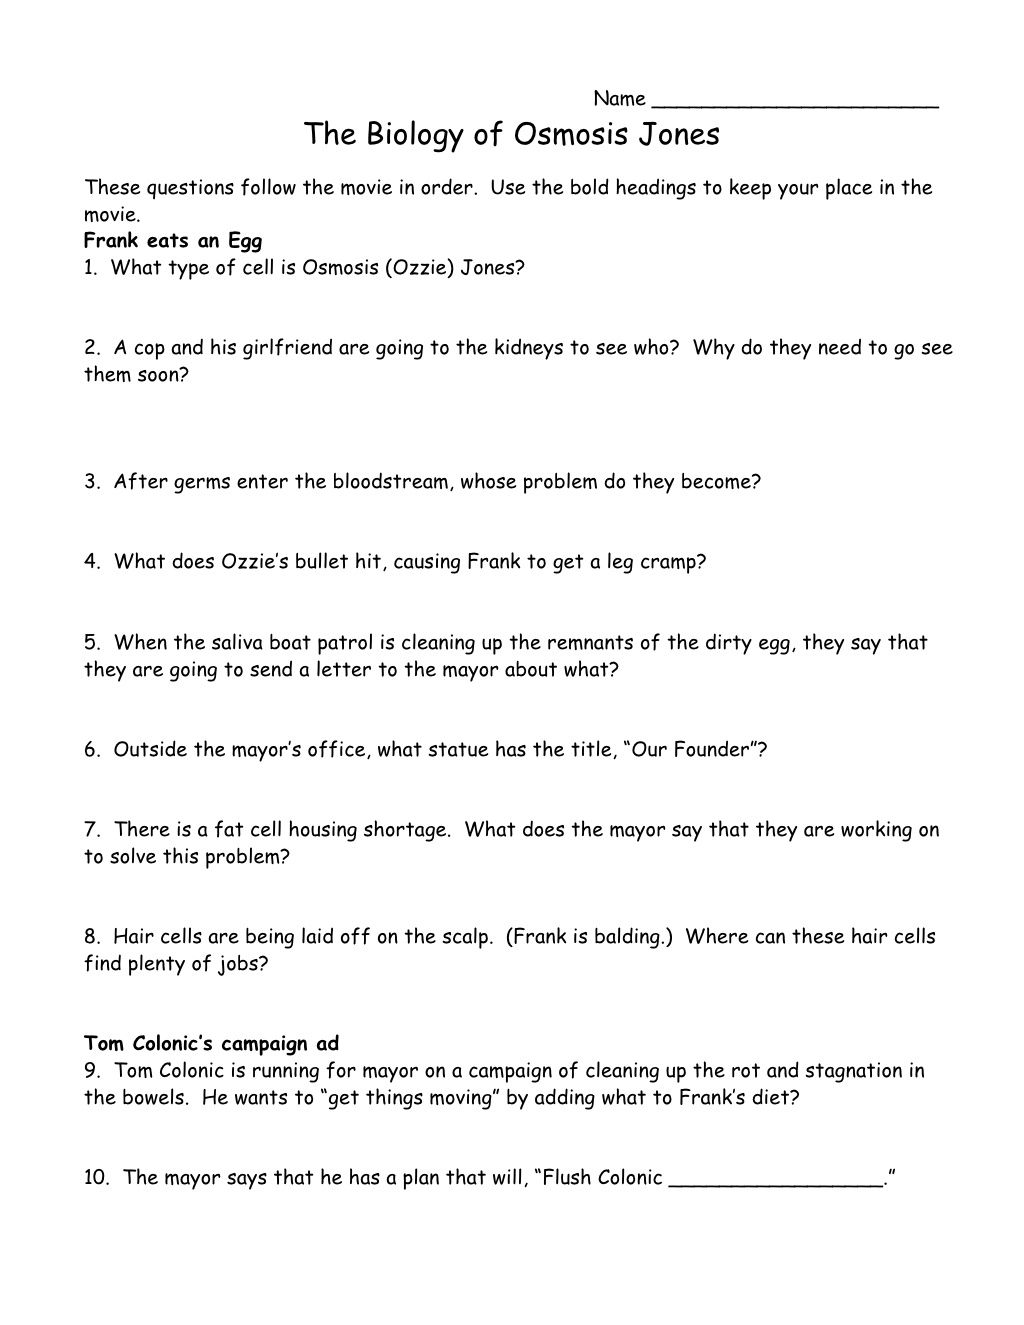 Worksheets Osmosis Jones Worksheet Answers name the biology of osmosis jonesthese questions follow movie the